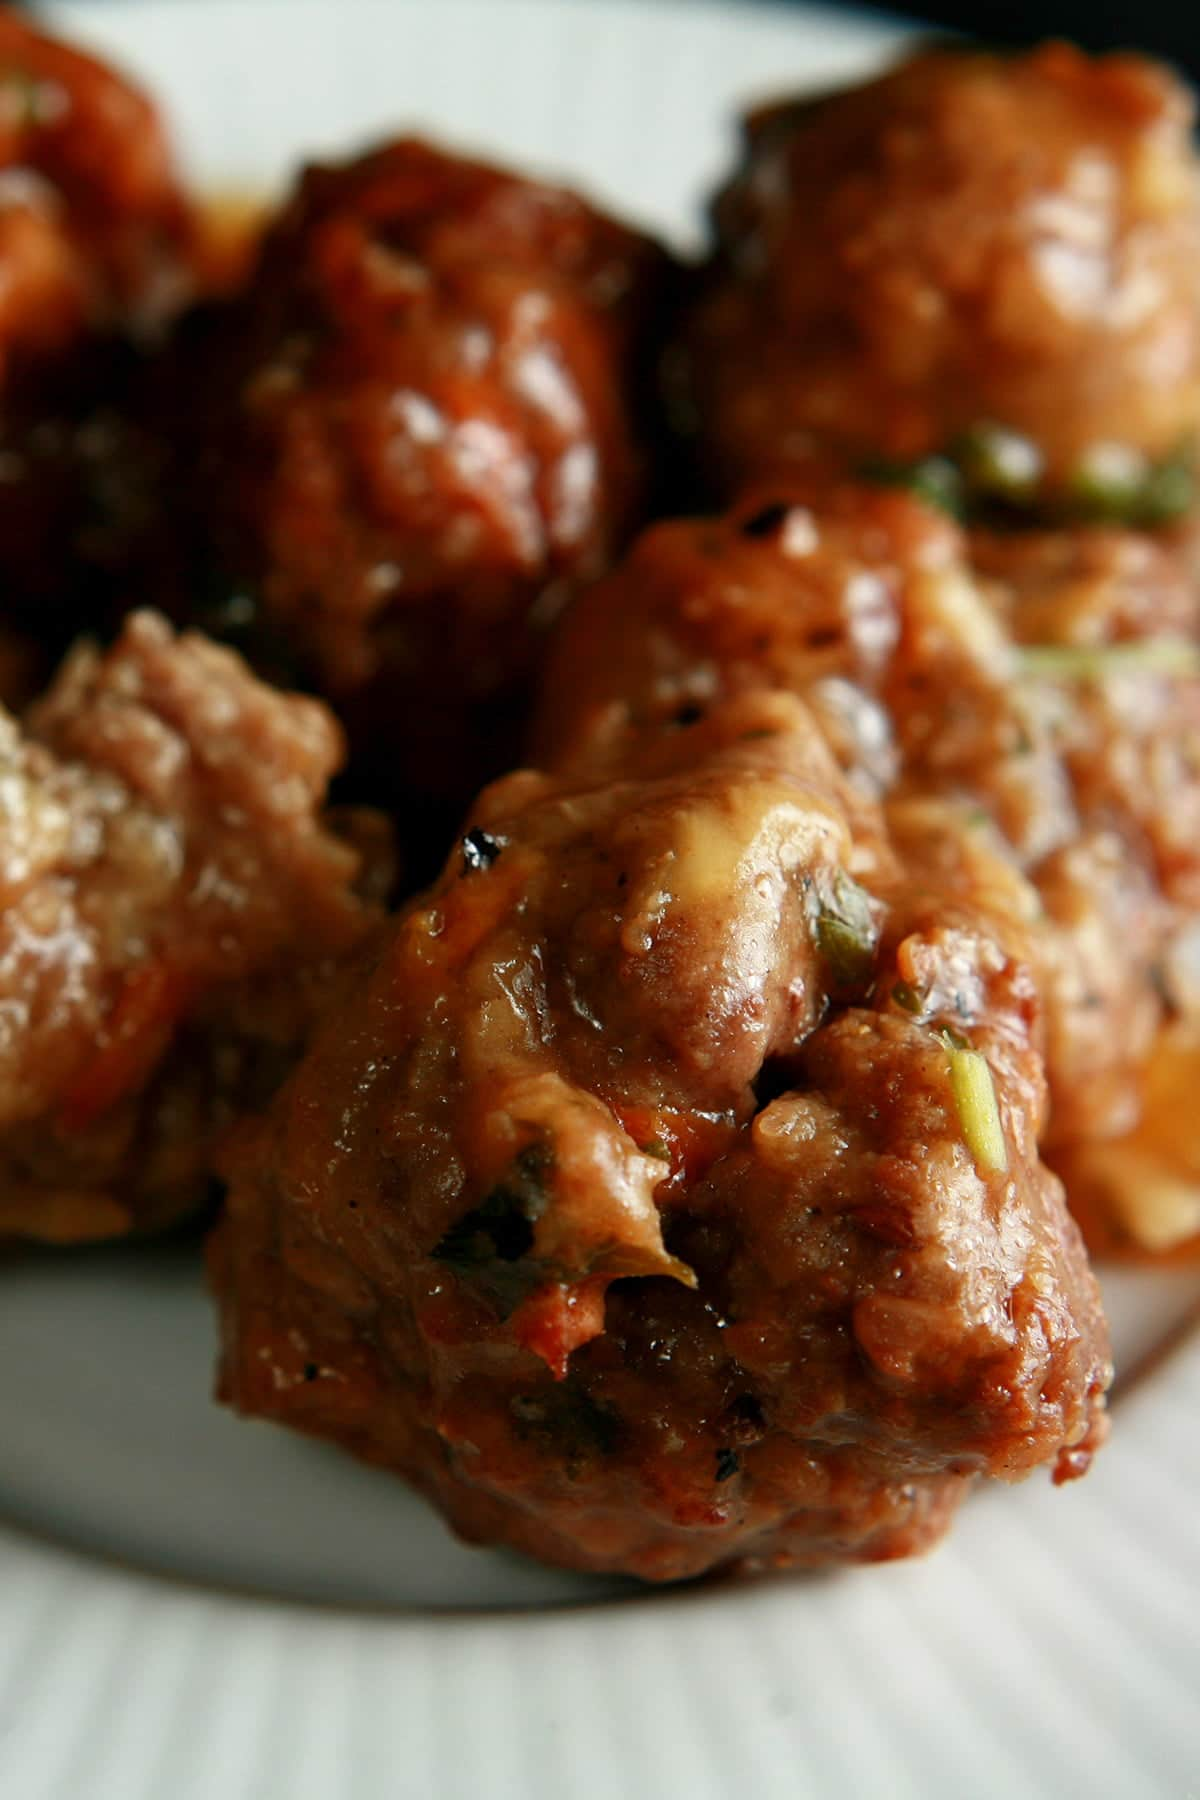 Several Gluten-Free Meatballs are served on a small white plate. The meatballs show flecks of orange and green throughout.